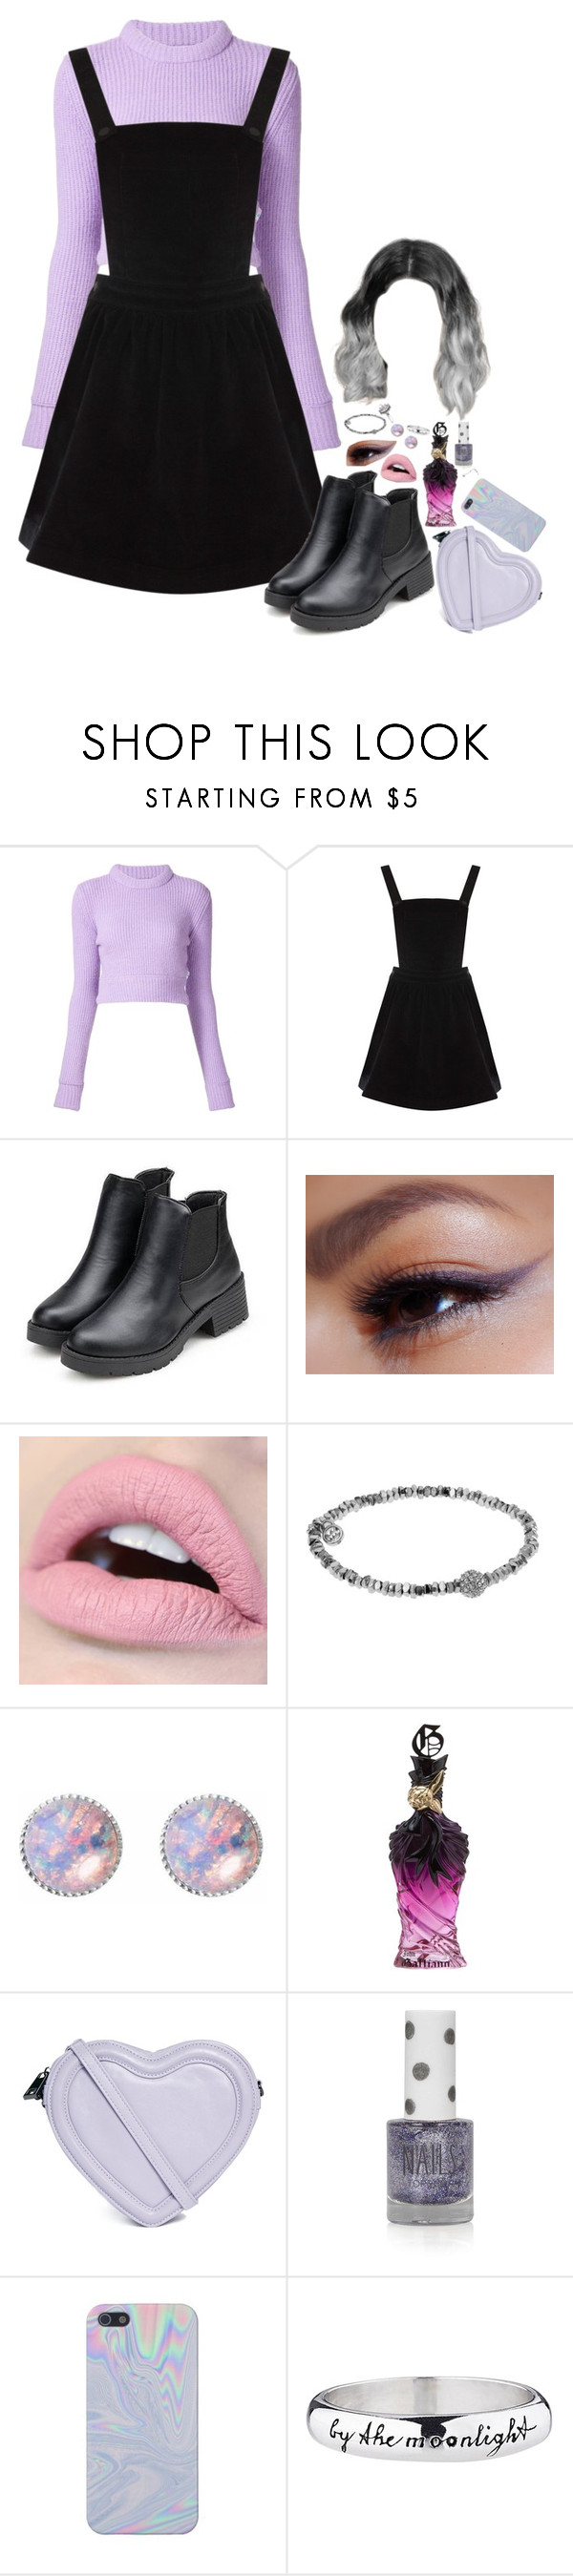 """""""Always on the hunt for a little more time"""" by oblivionsgarden ❤ liked on Polyvore featuring UNIF, Warehouse, Michael Kors, Galliano, ASOS and Topshop"""